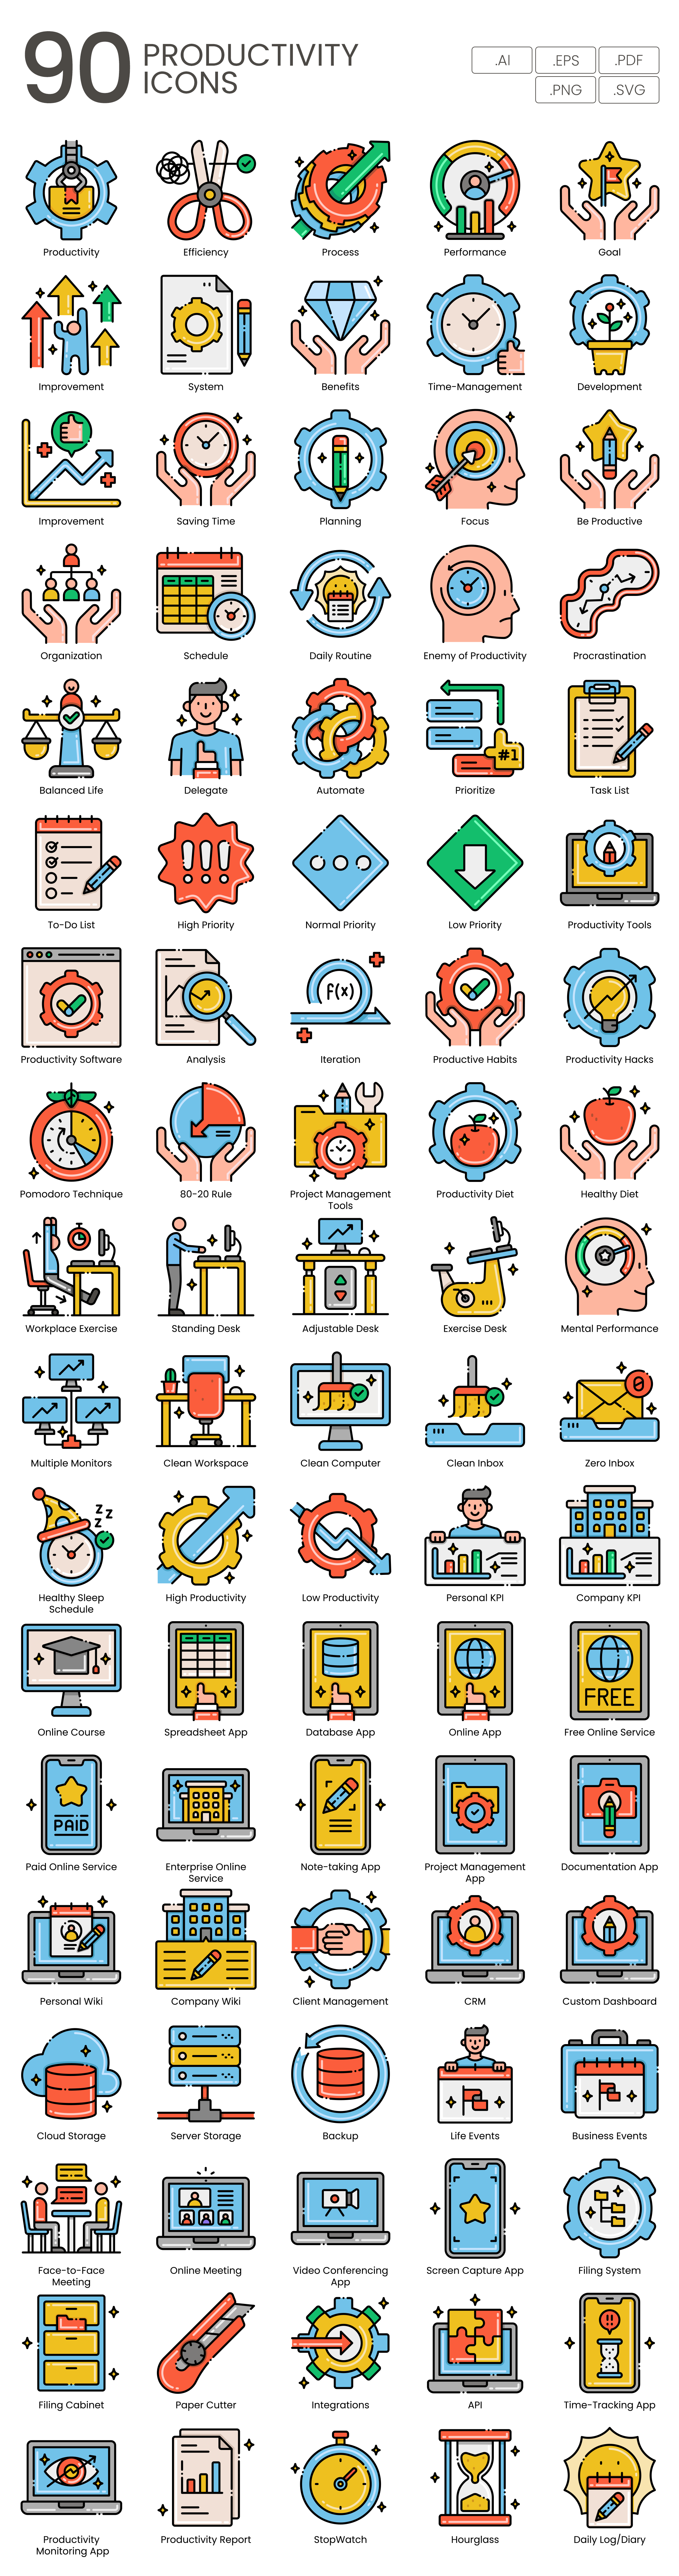 Preview Image for Productivity Icon Set